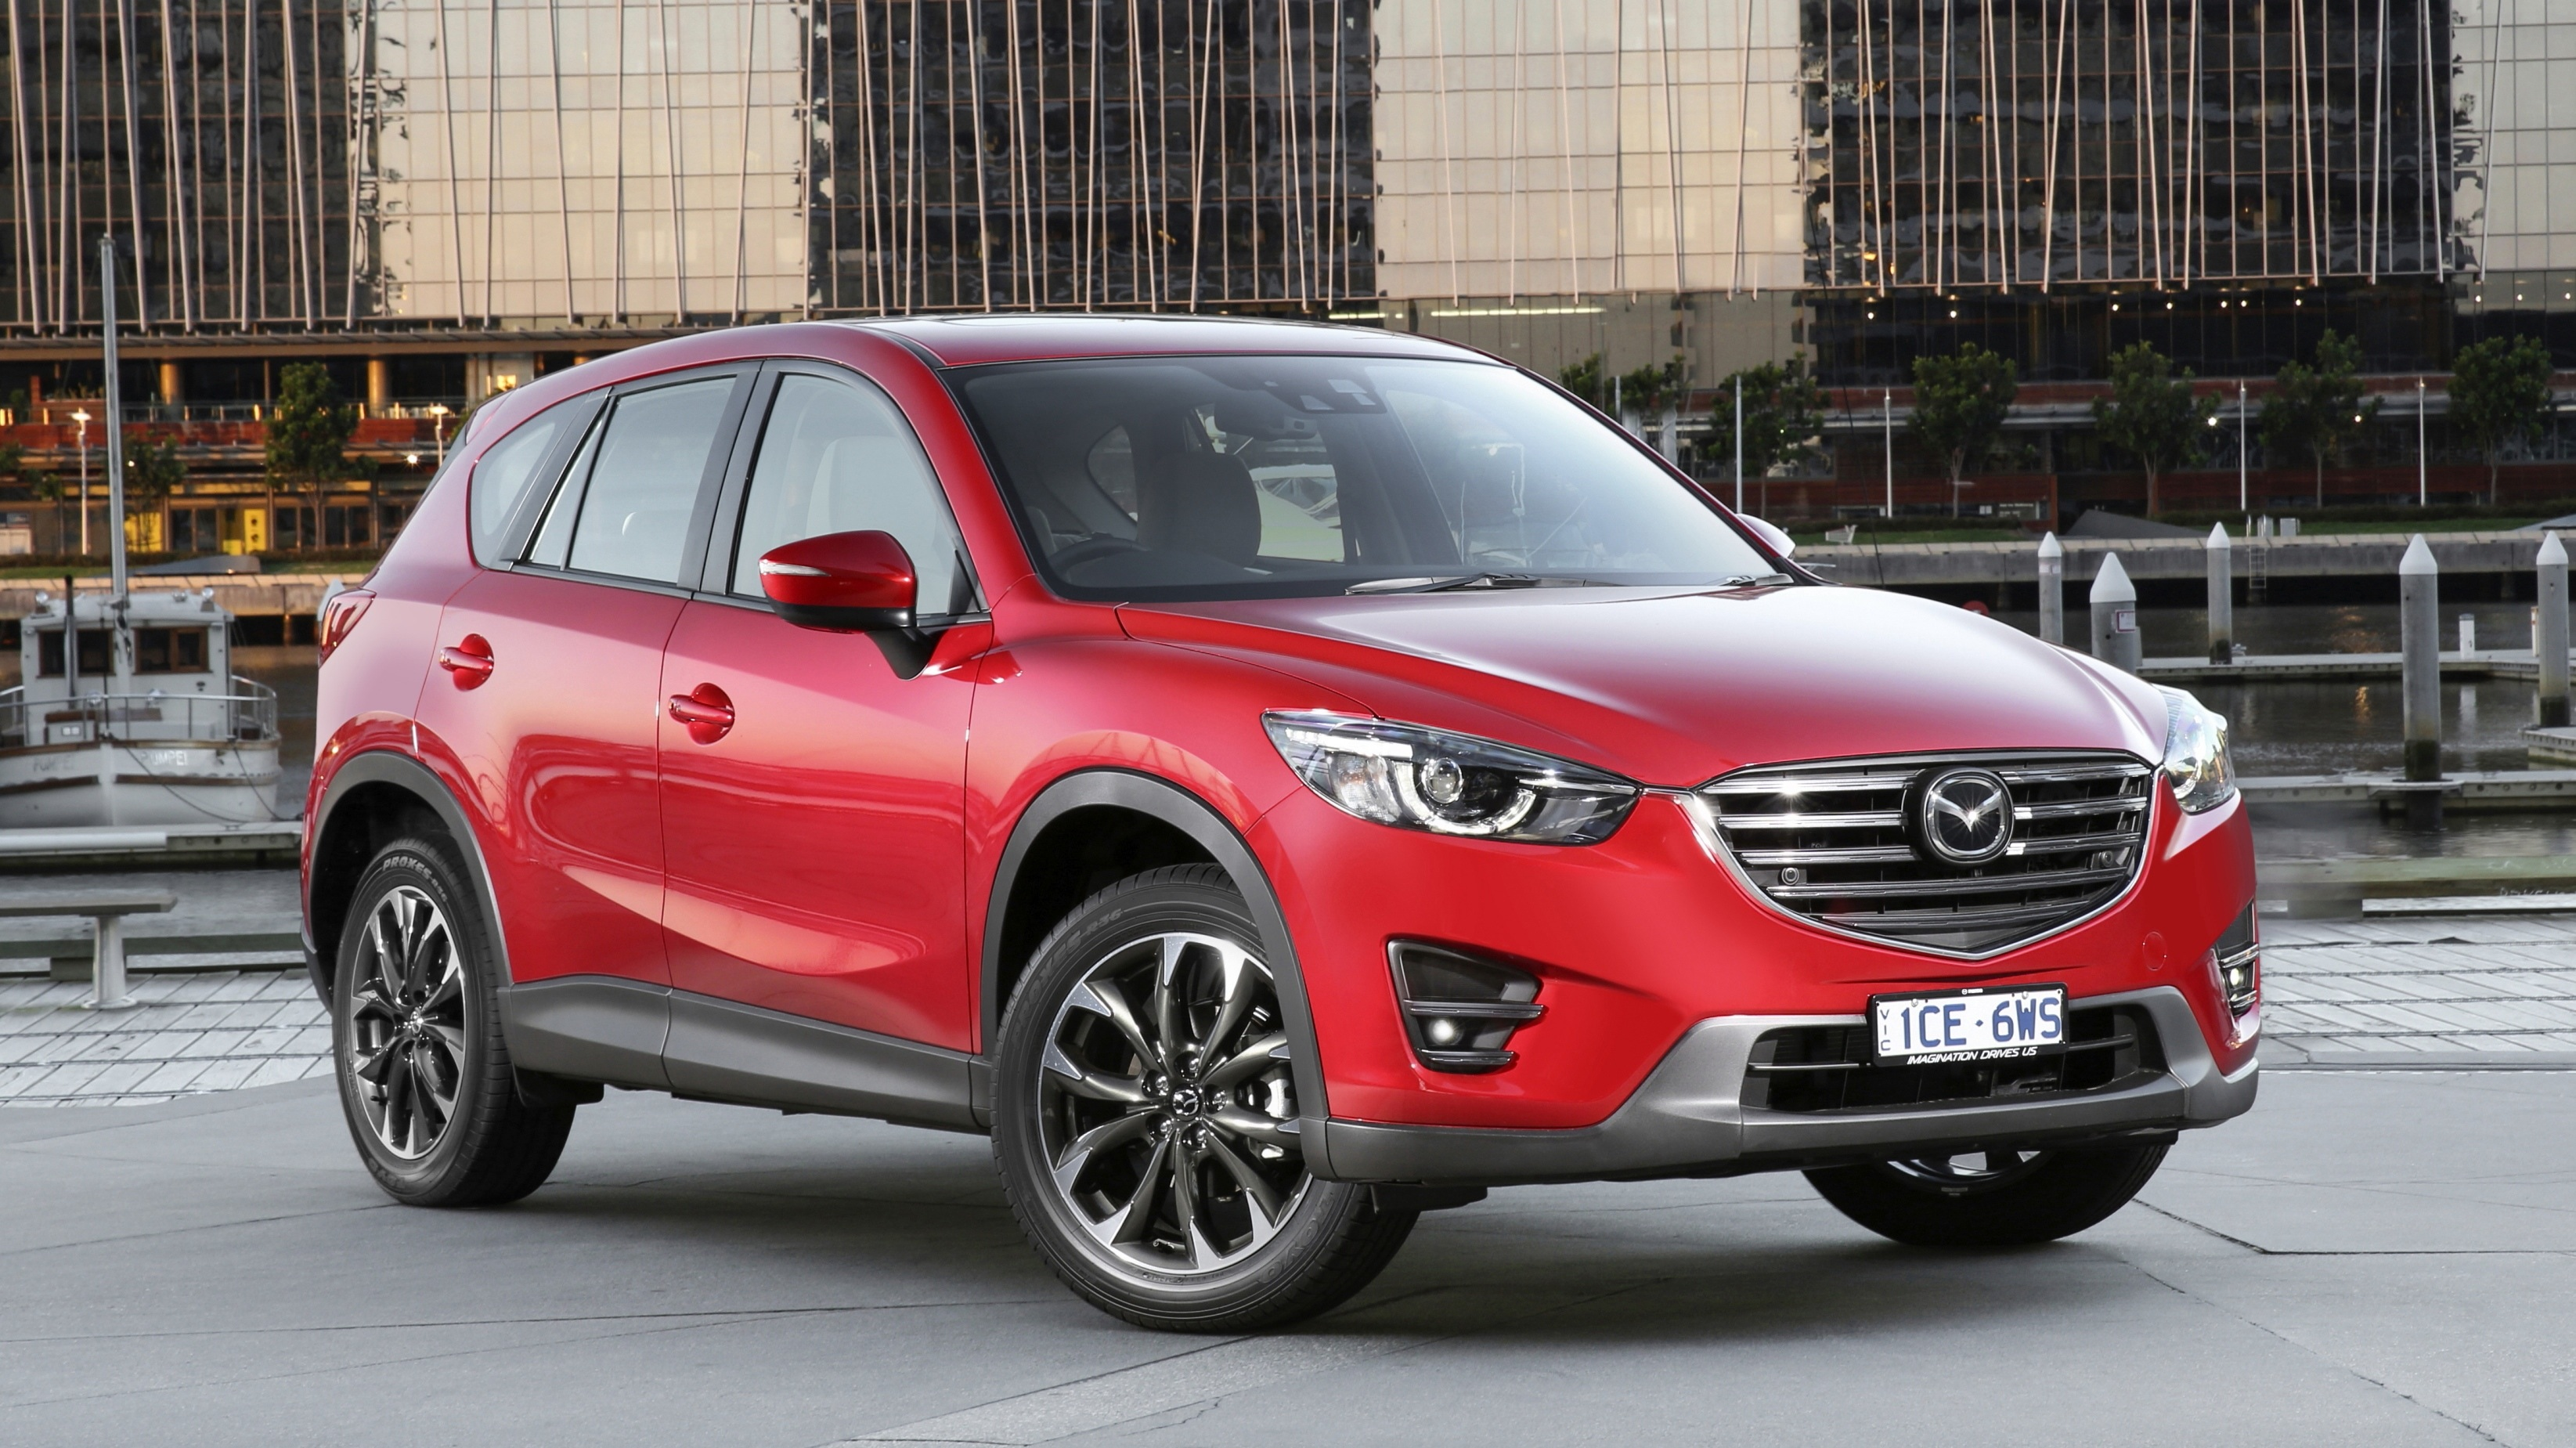 s cx mazda more news model priced previous the at its it than